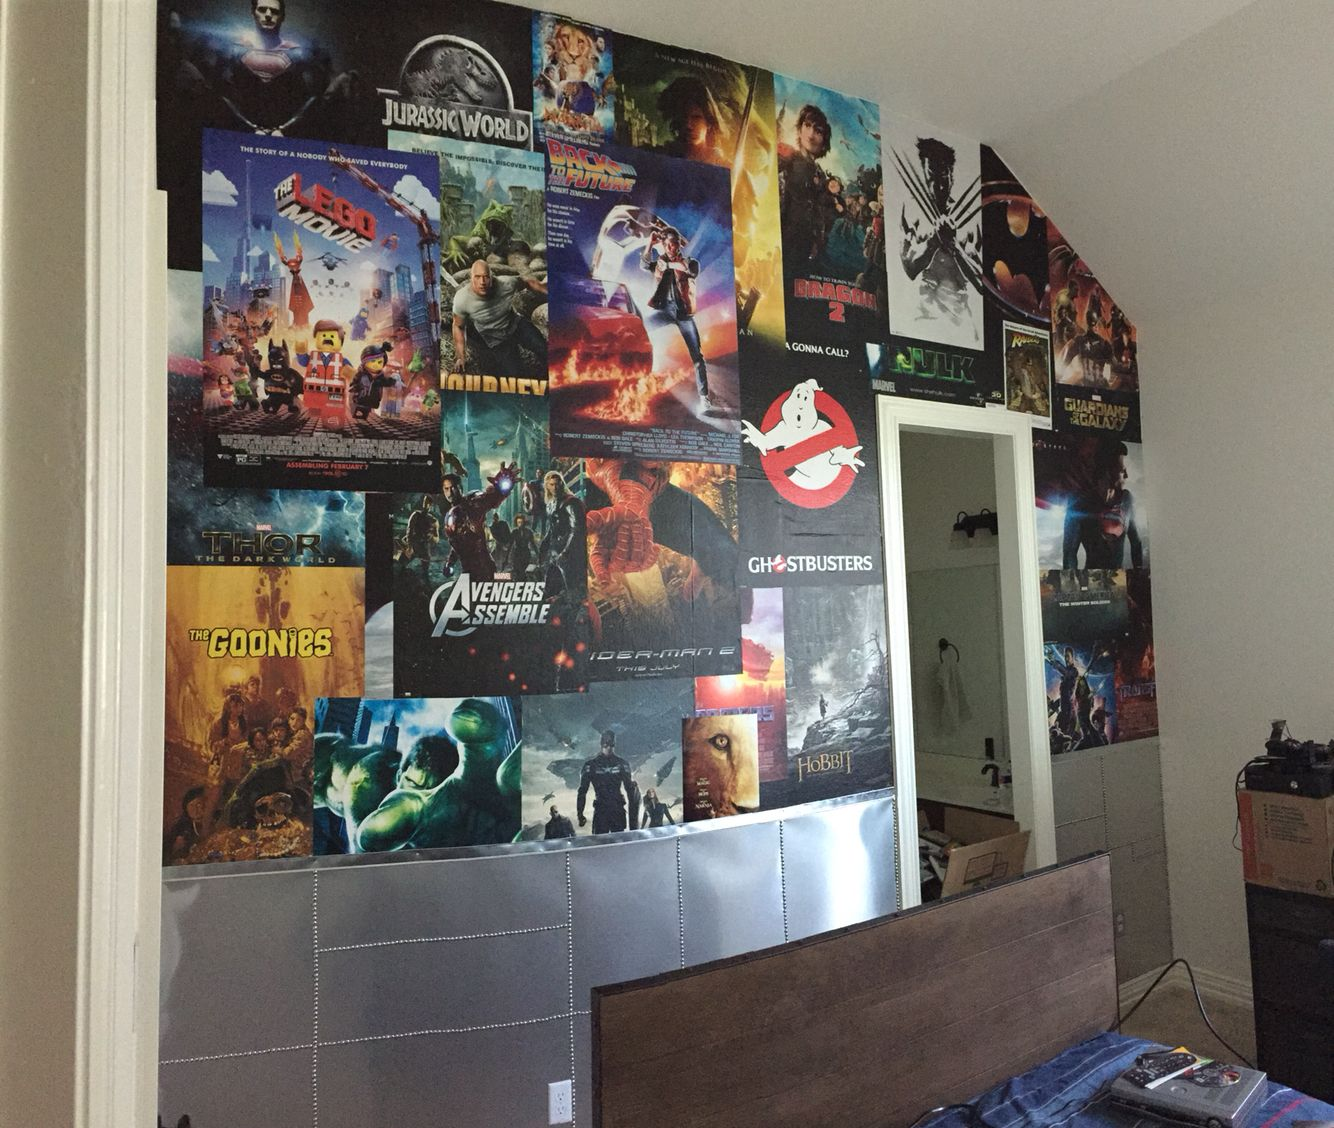 New For The Bedroom For Him This Clients Son Wanted A Movie Themed Main Wall In His Bedroom